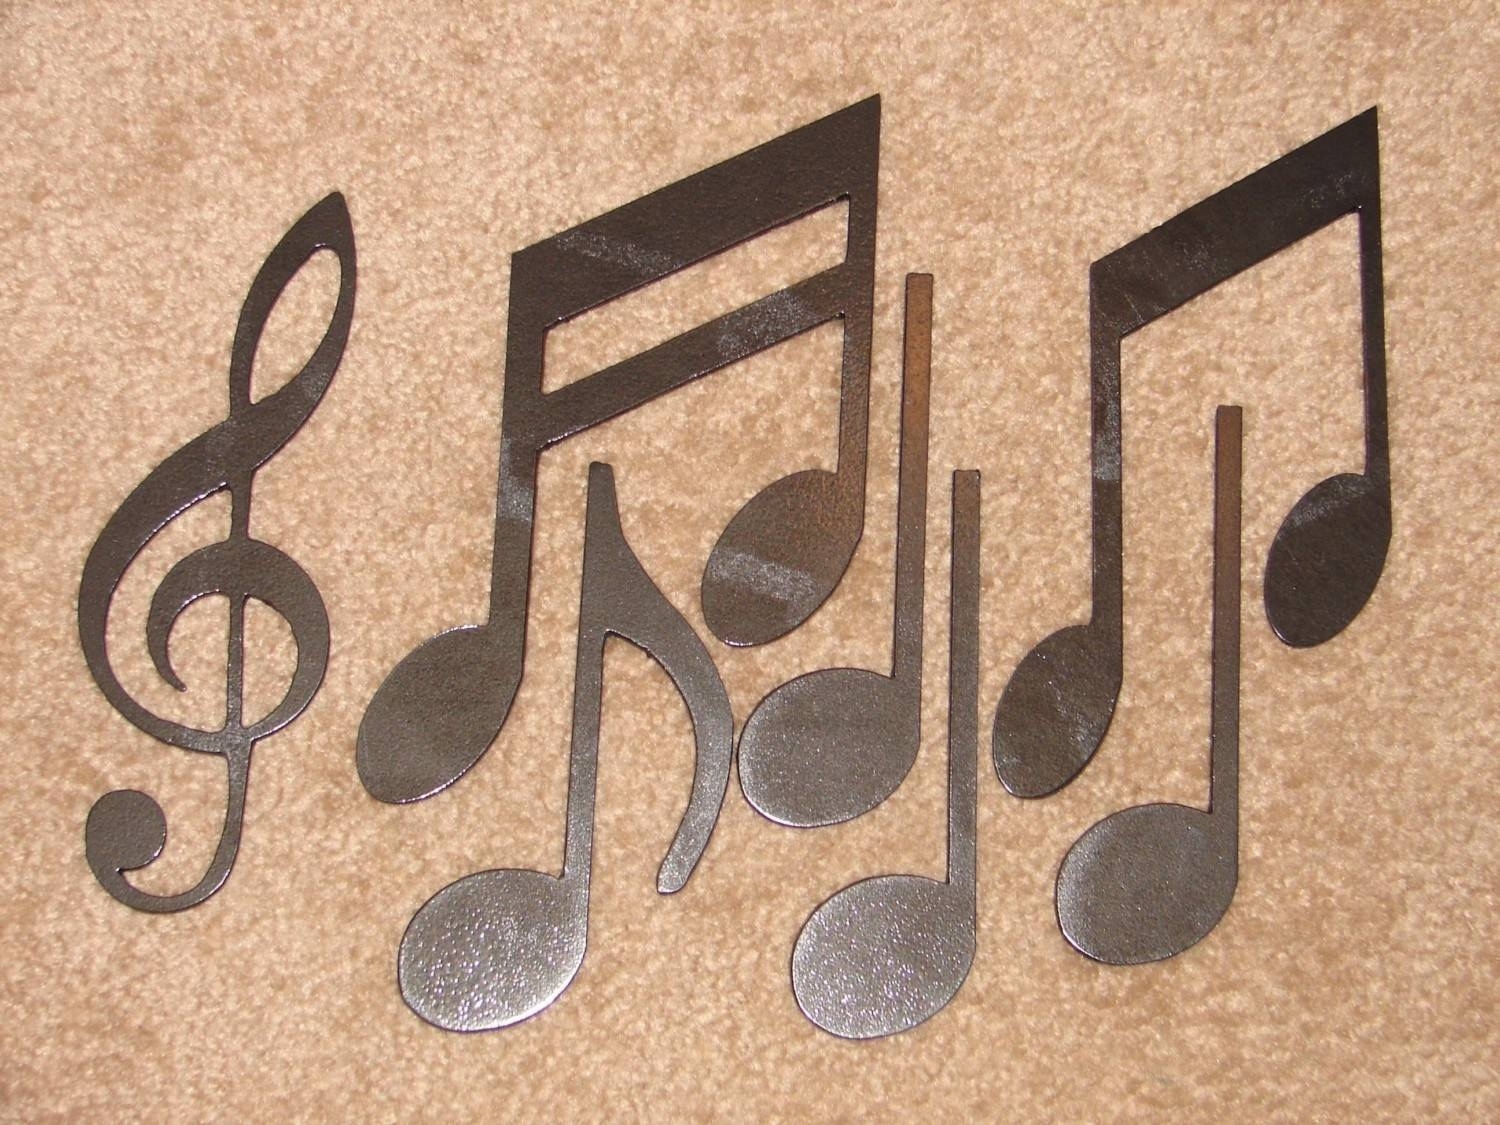 Metal Wall Art Decor Music Notes Musical Note Patio Intended For Newest Musical Metal Wall Art (View 15 of 20)